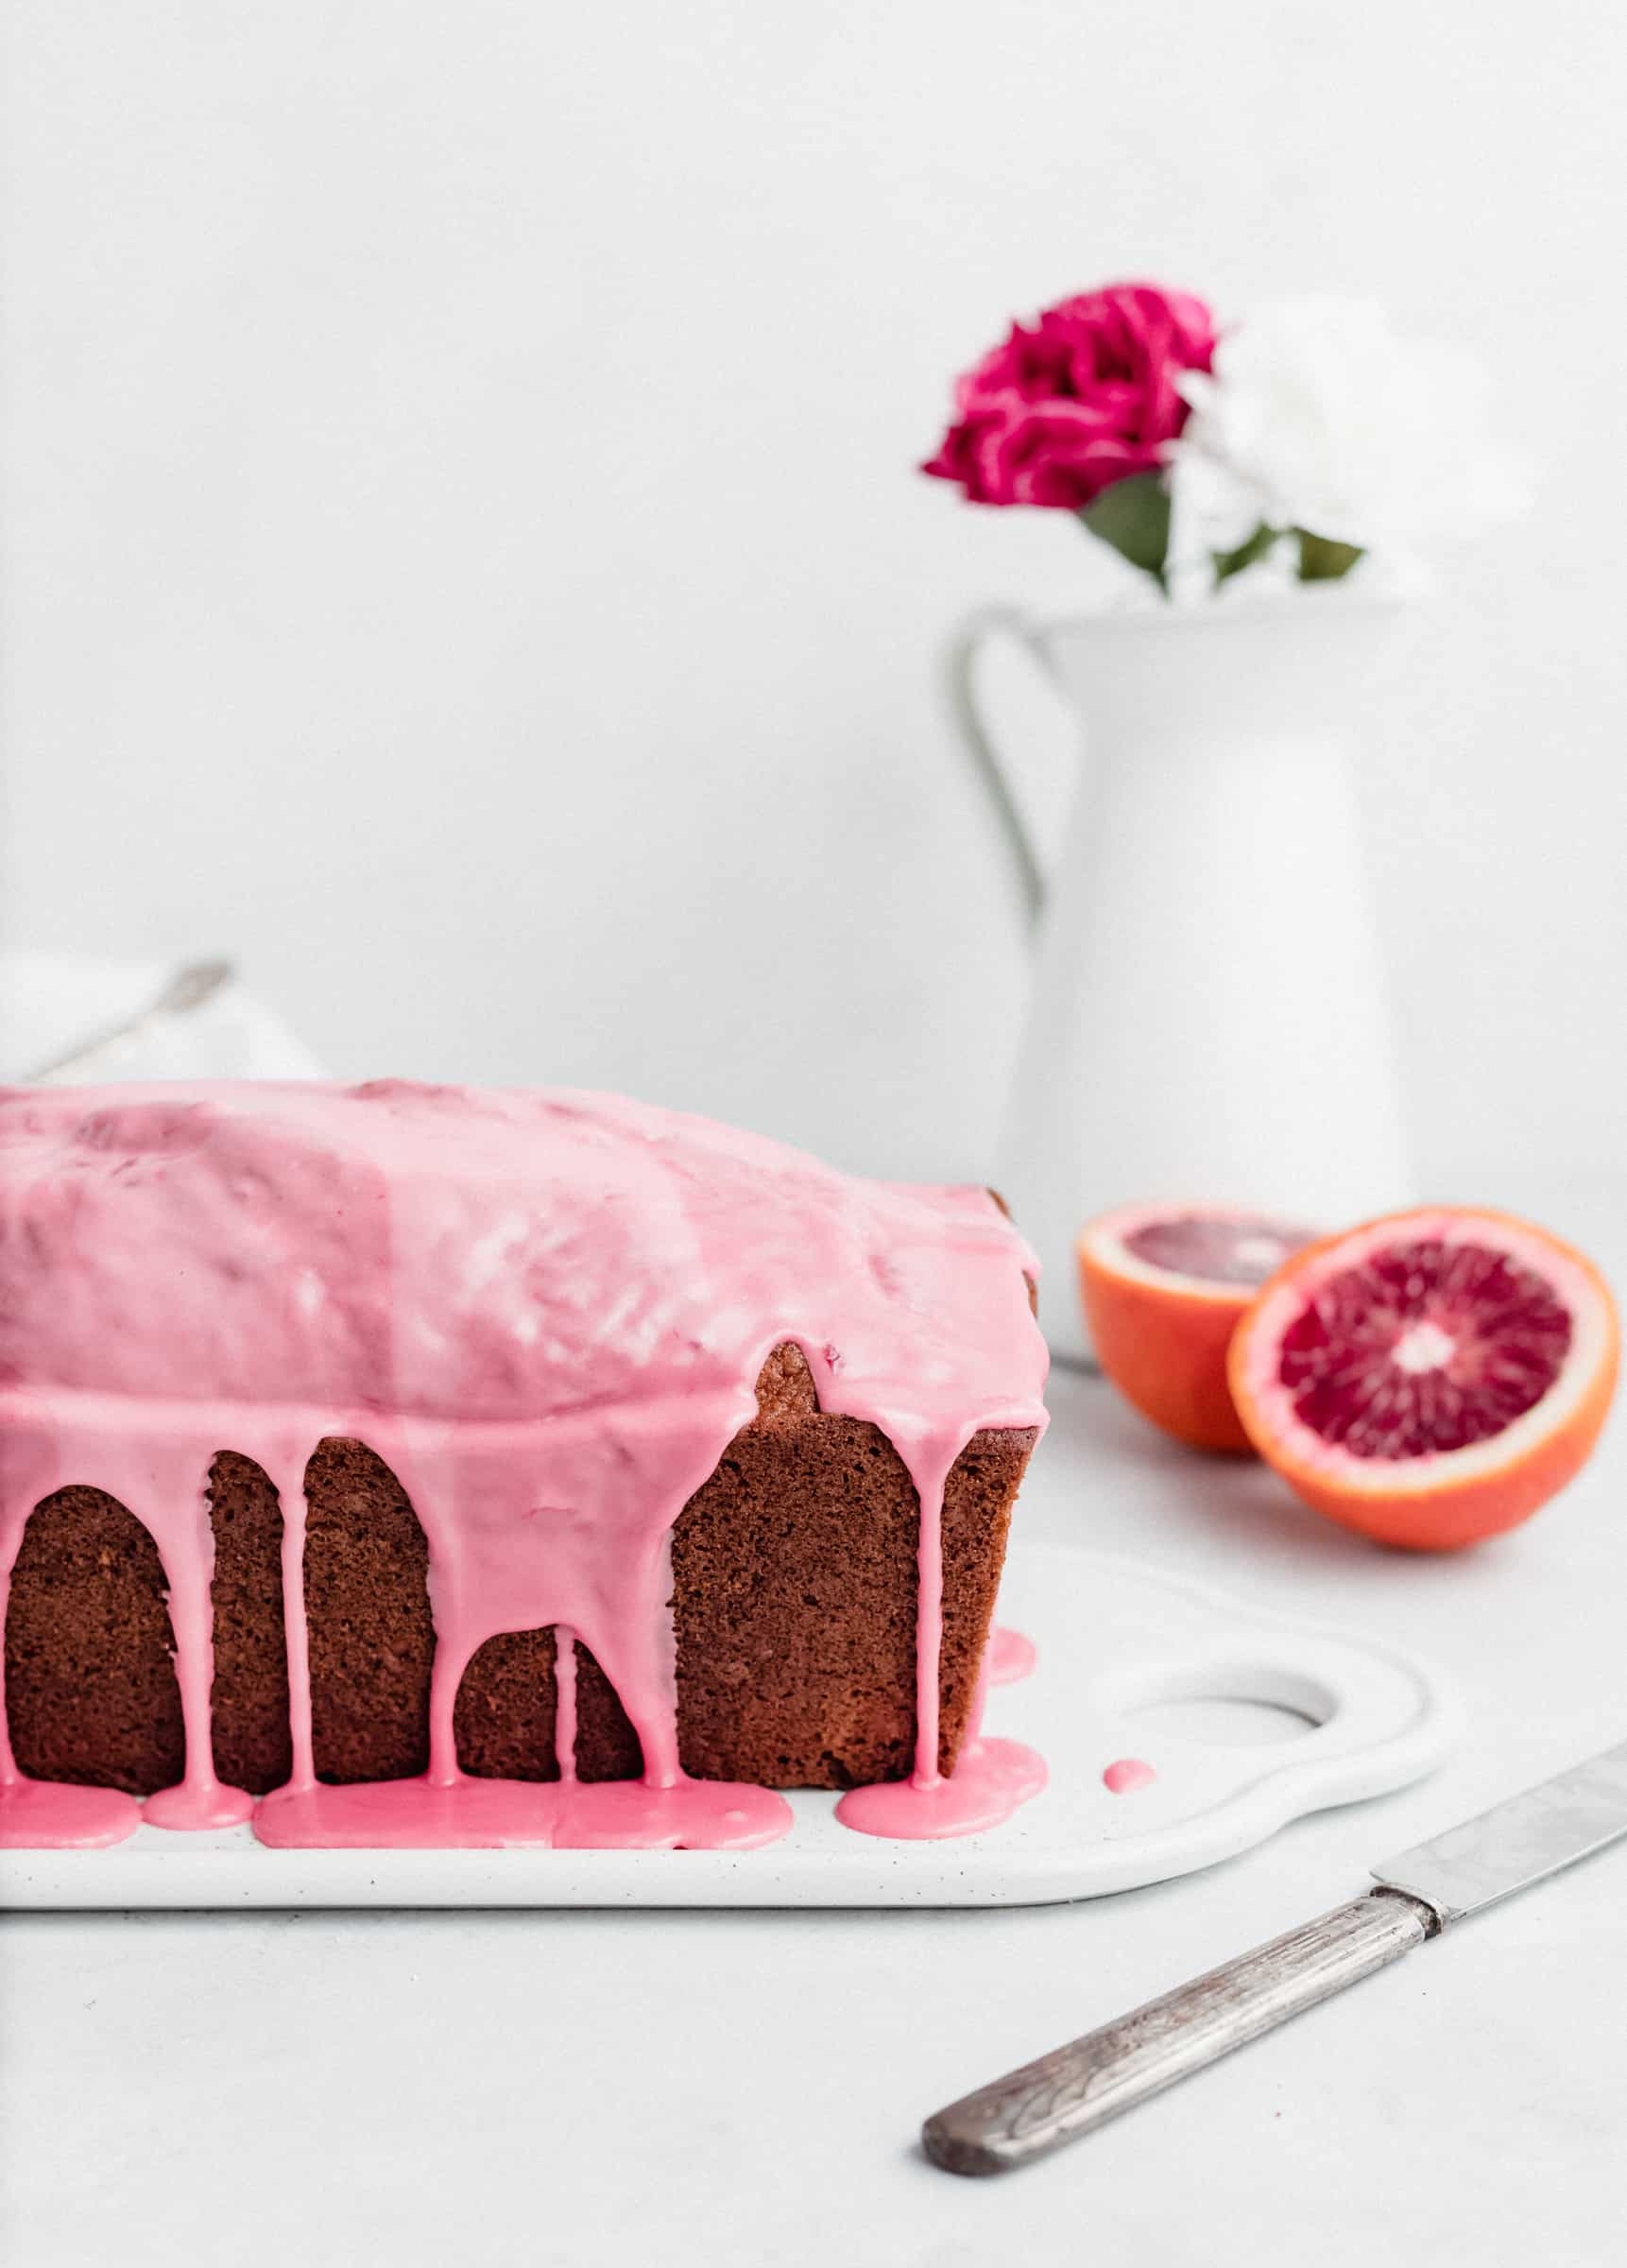 Blood Orange and Almond Olive Oil Loaf Cake